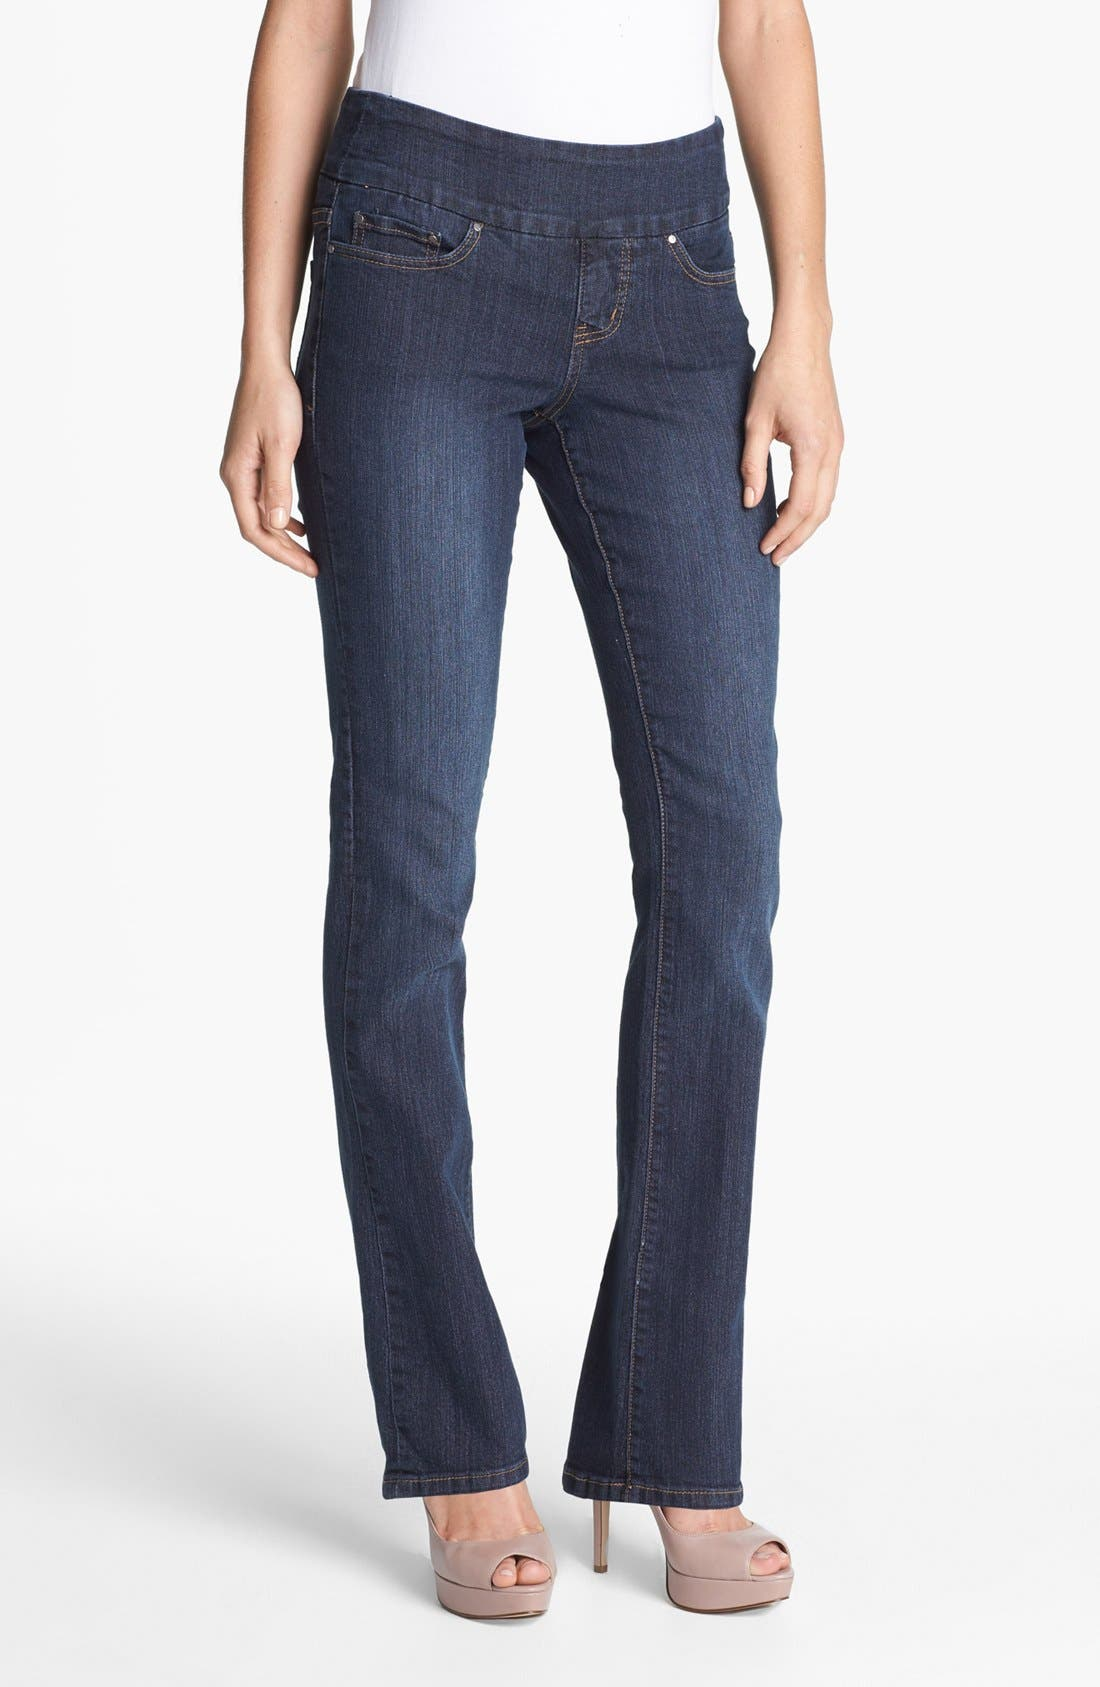 Alternate Image 1 Selected - Jag Jeans 'Paley' Pull-On Bootcut Jeans (Atlantic Blue) (Petite)